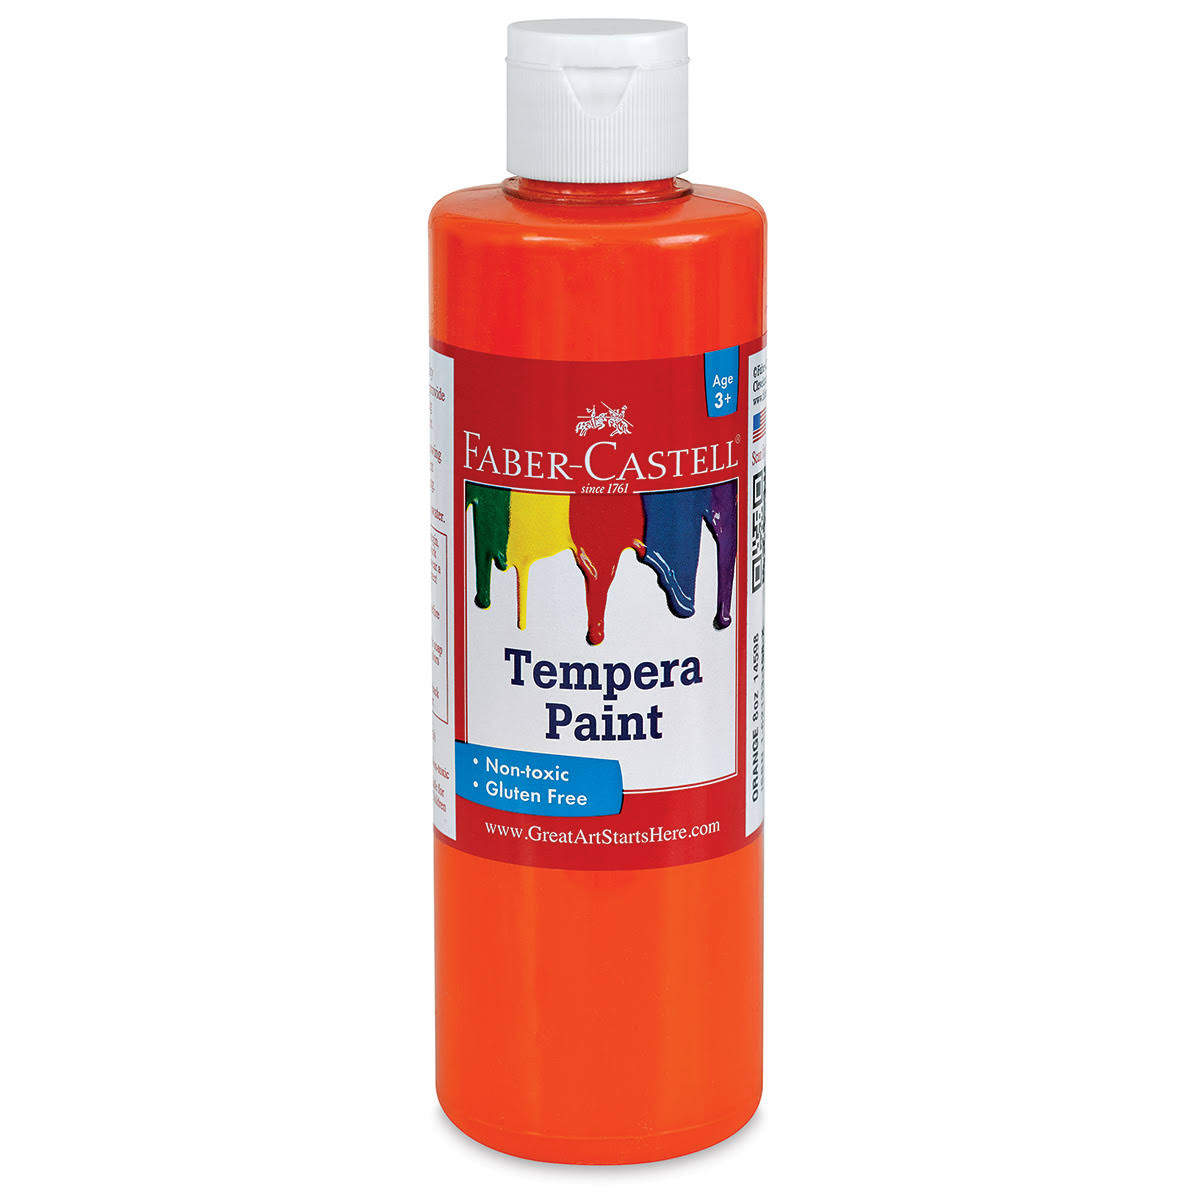 Faber-Castell Tempera Paint - Yellow, 8 oz Bottle